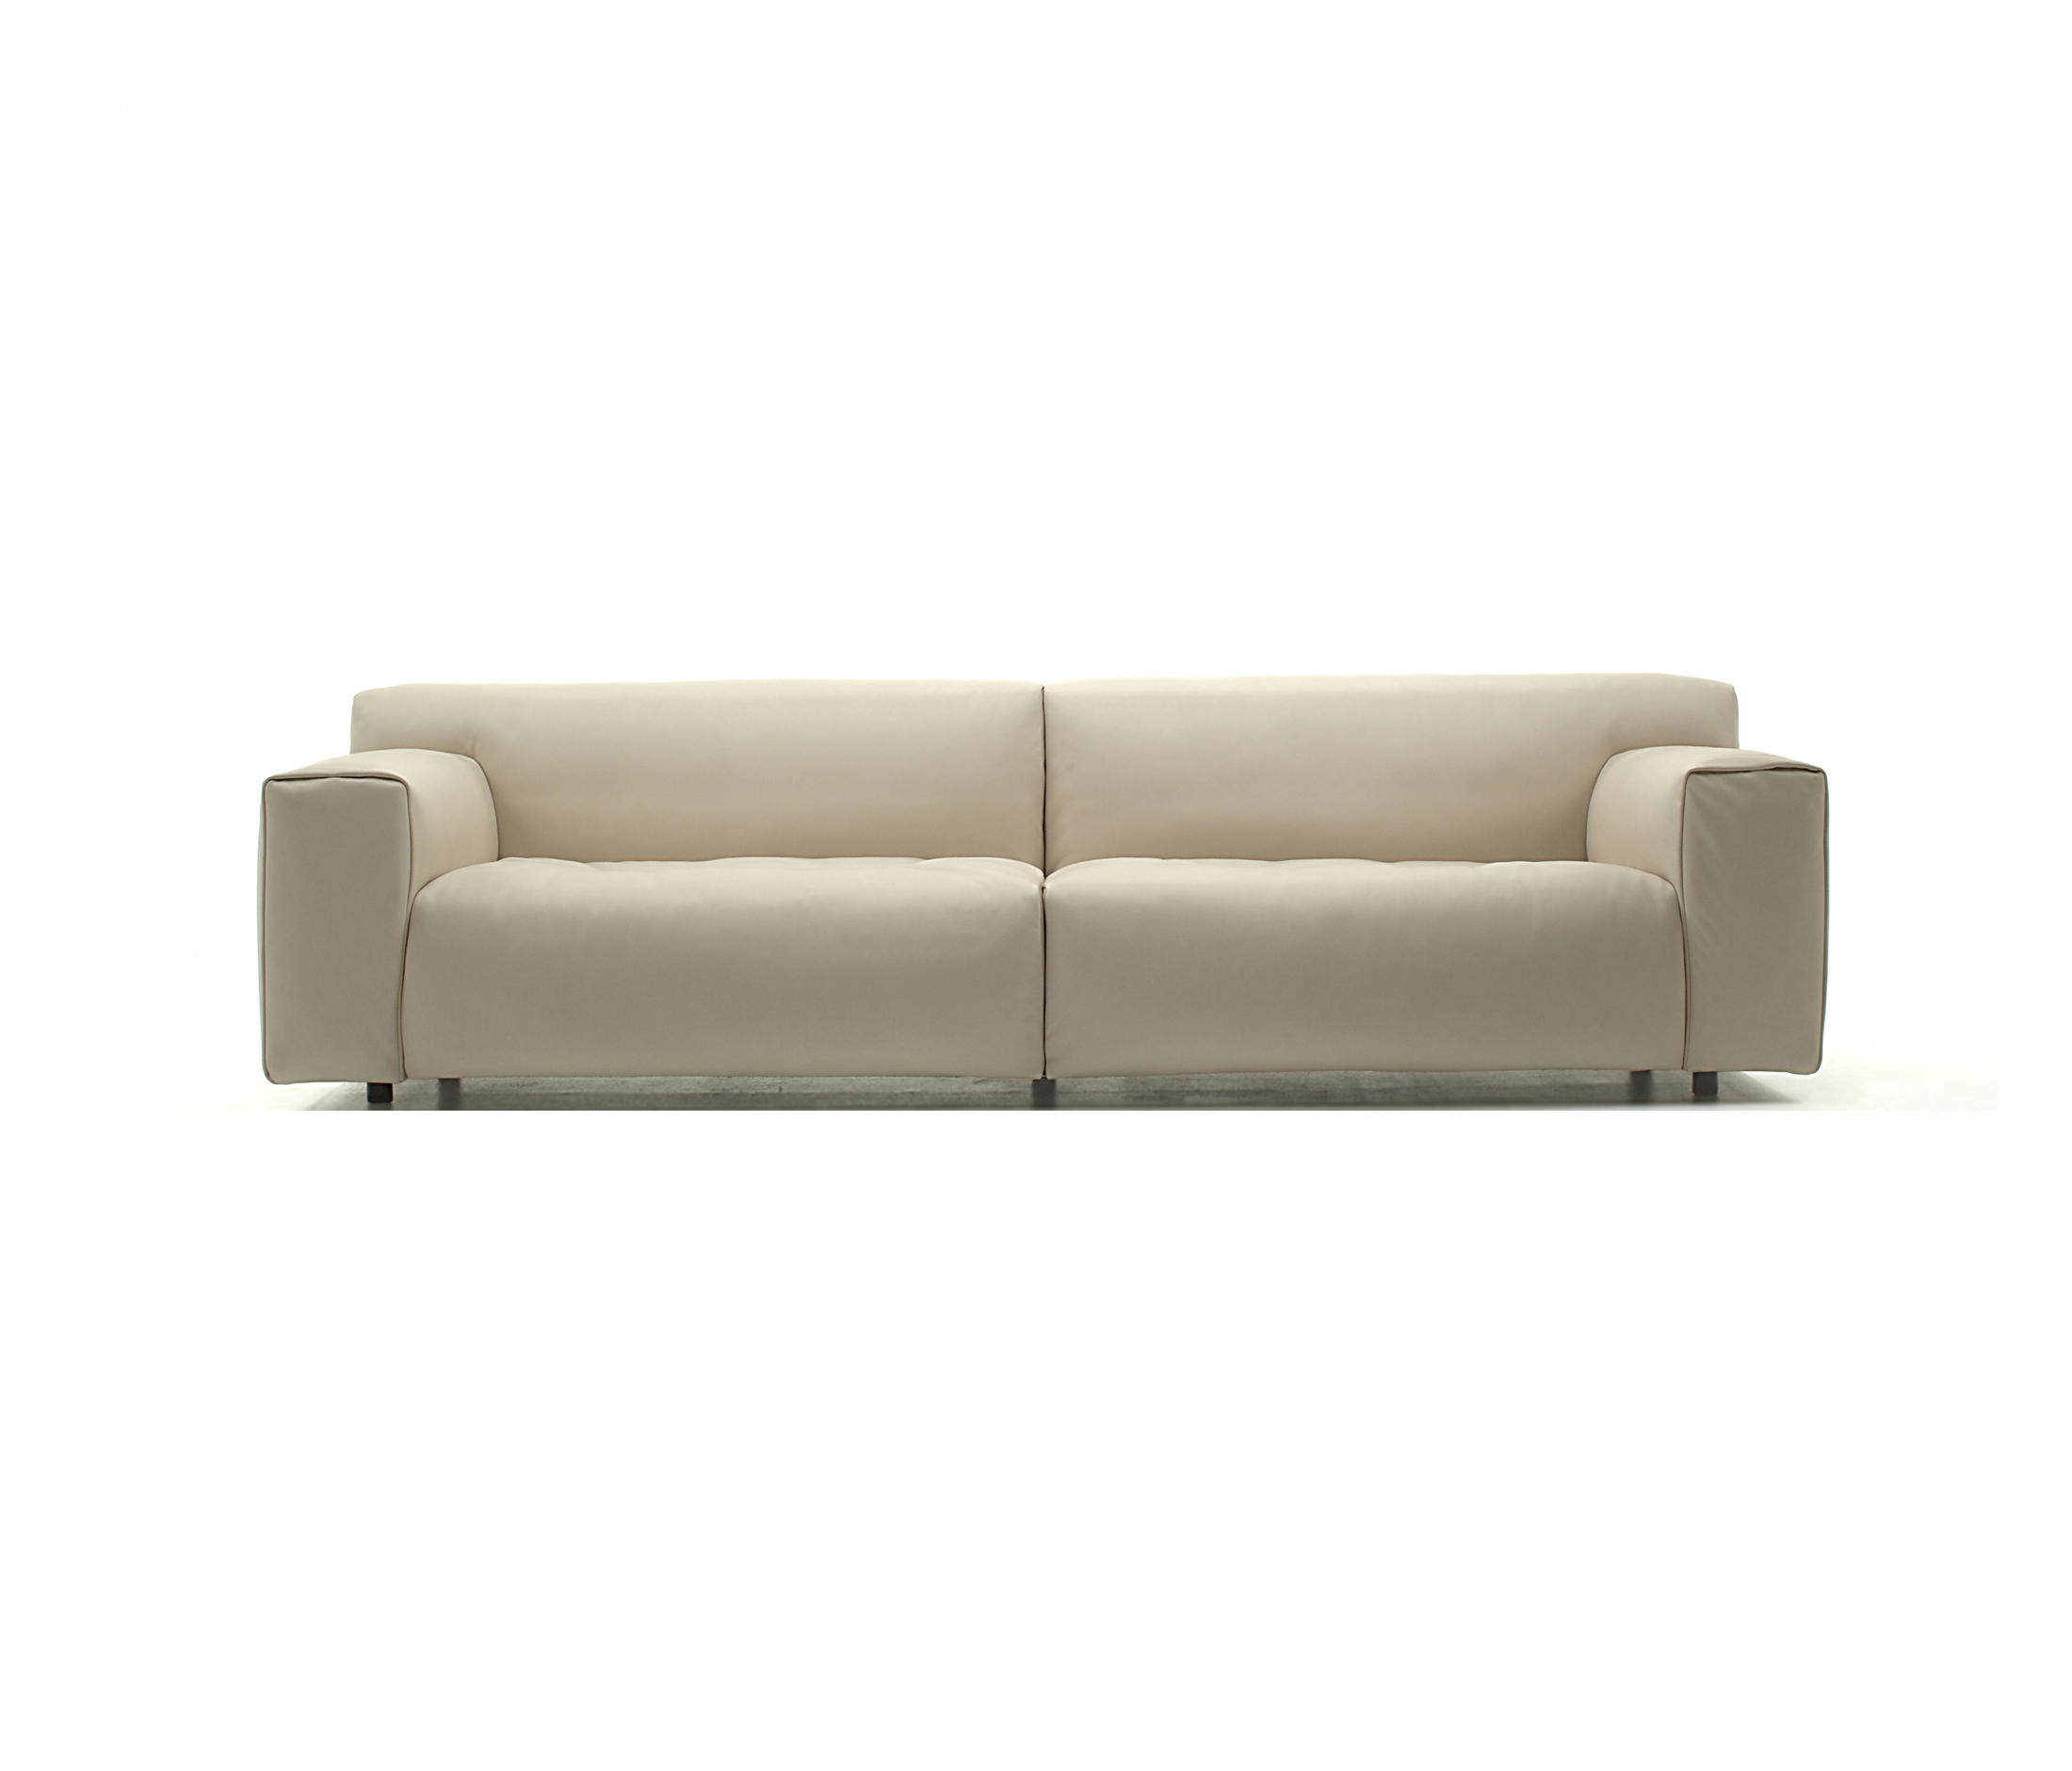 Softwall loungesofas von living divani architonic for Living divani softwall